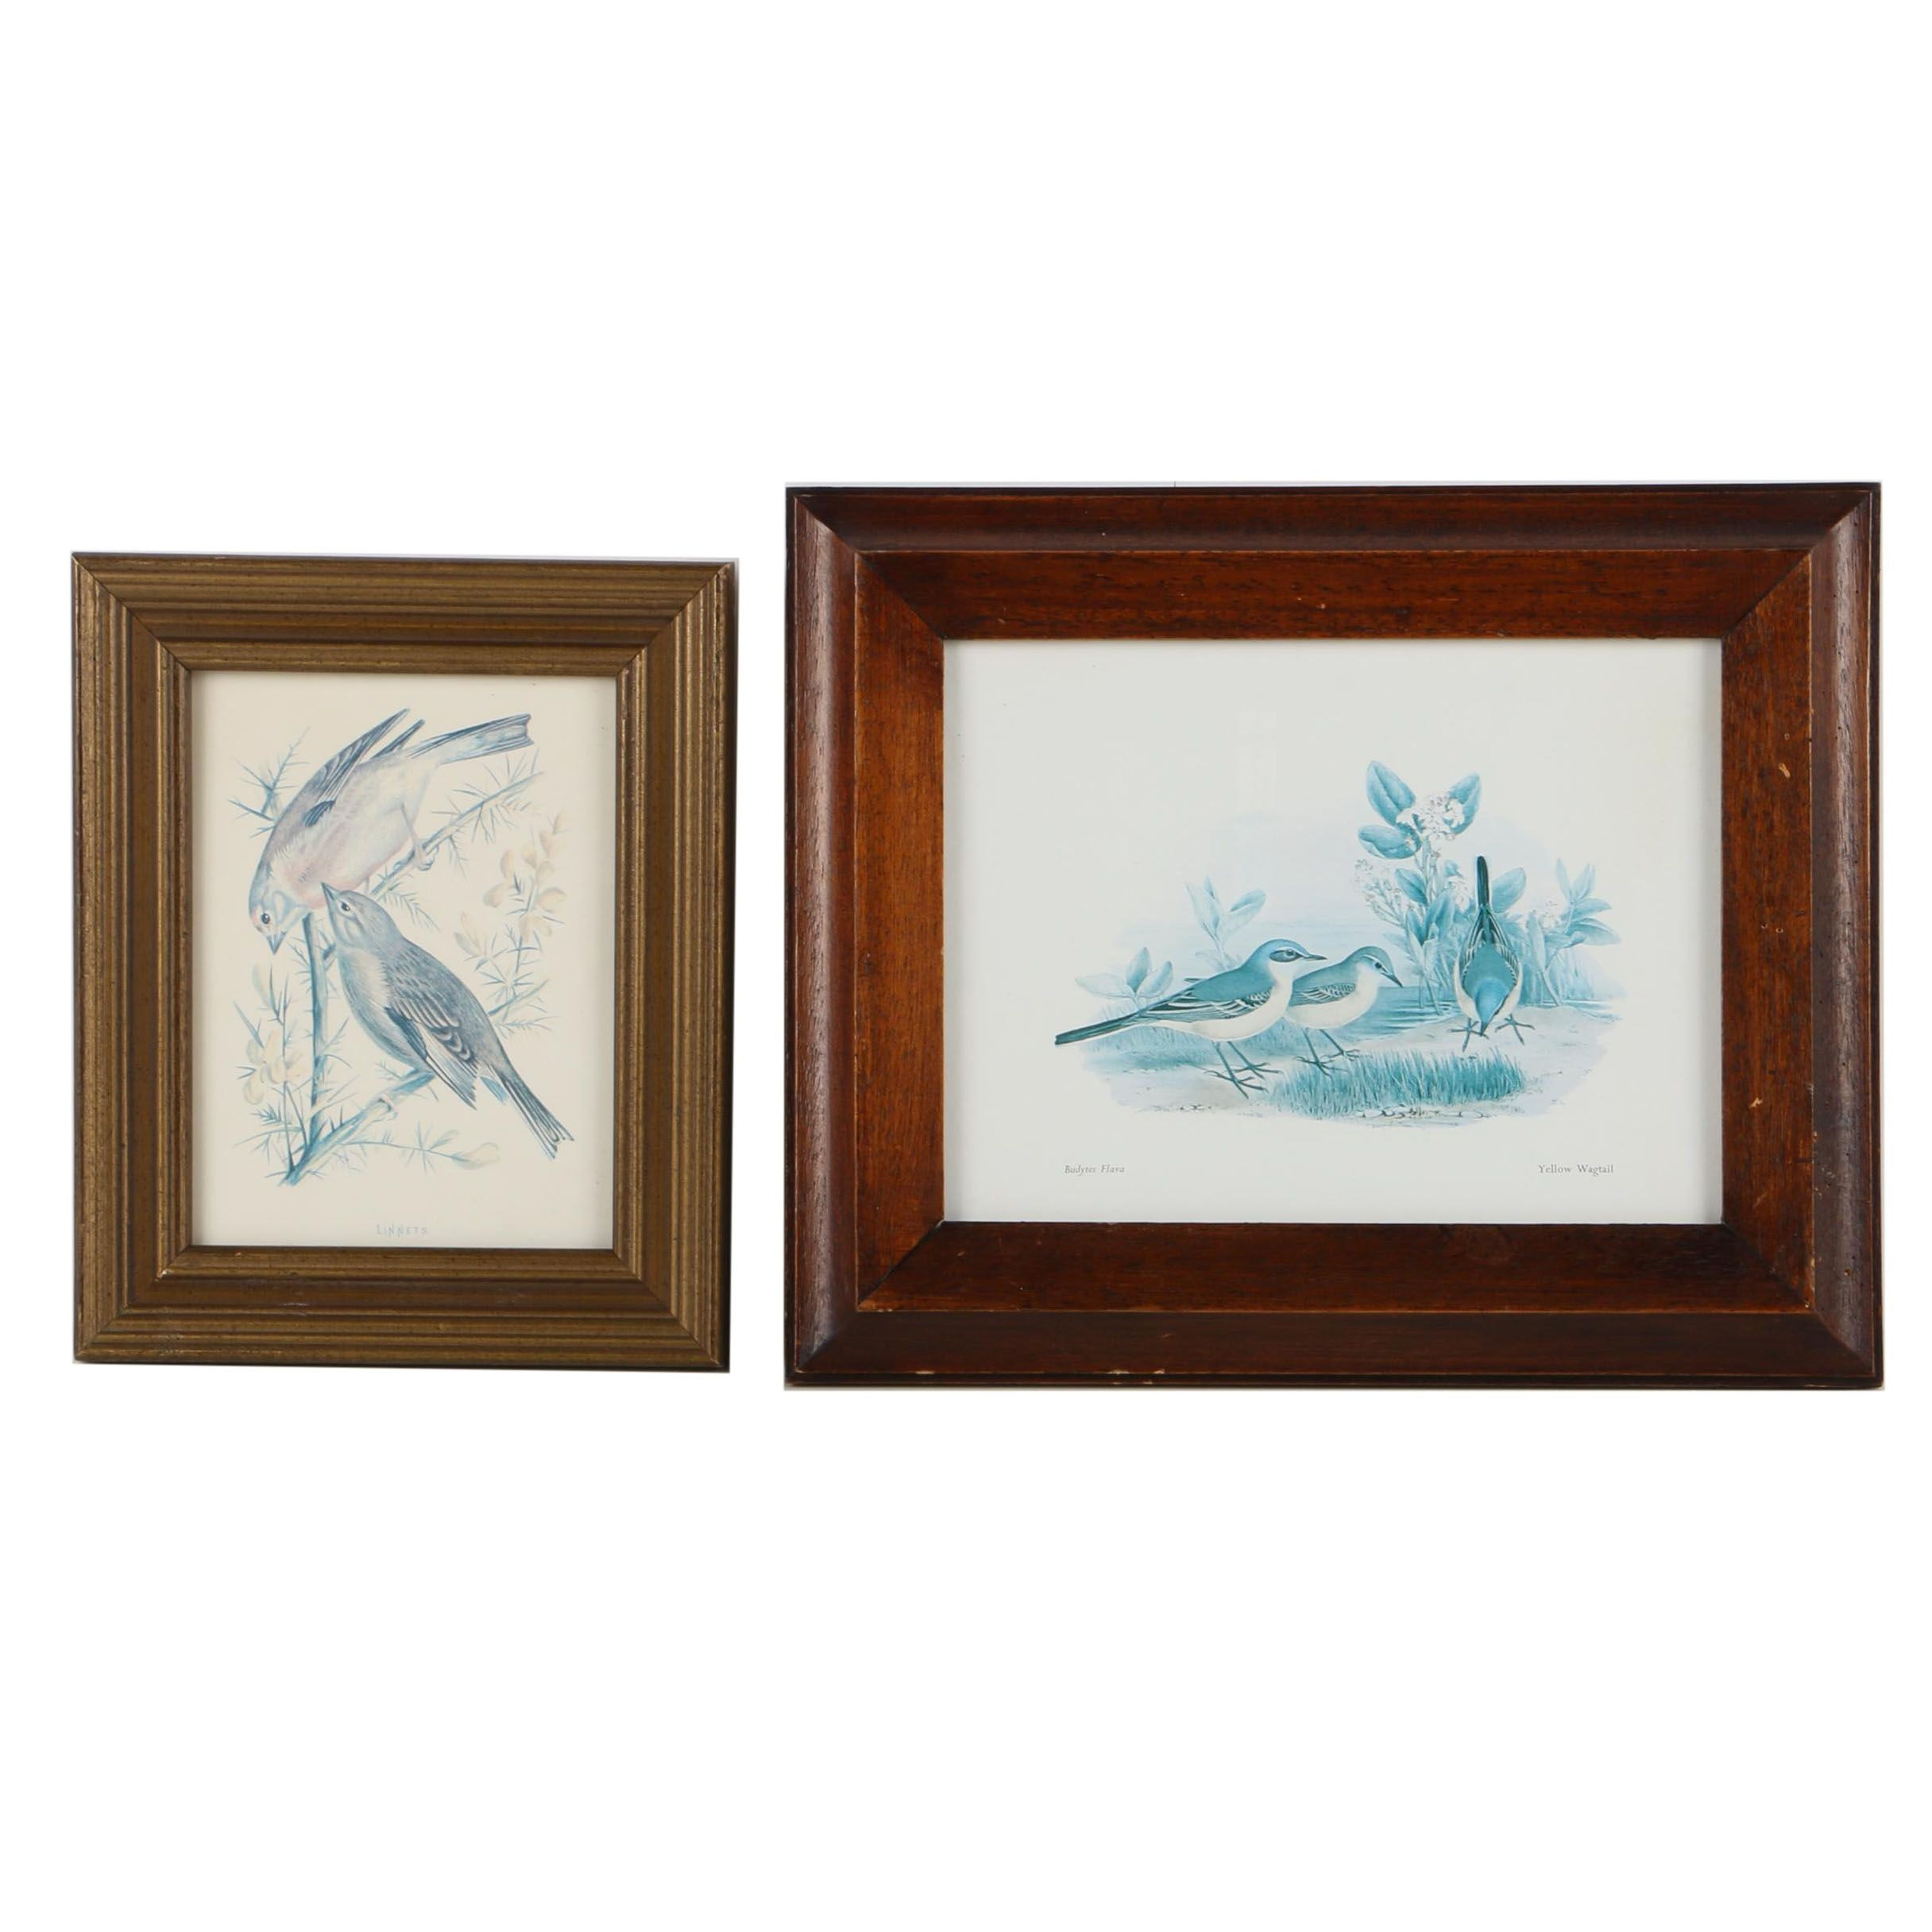 Pair of Offset Lithograph Prints After Bird Illustrations